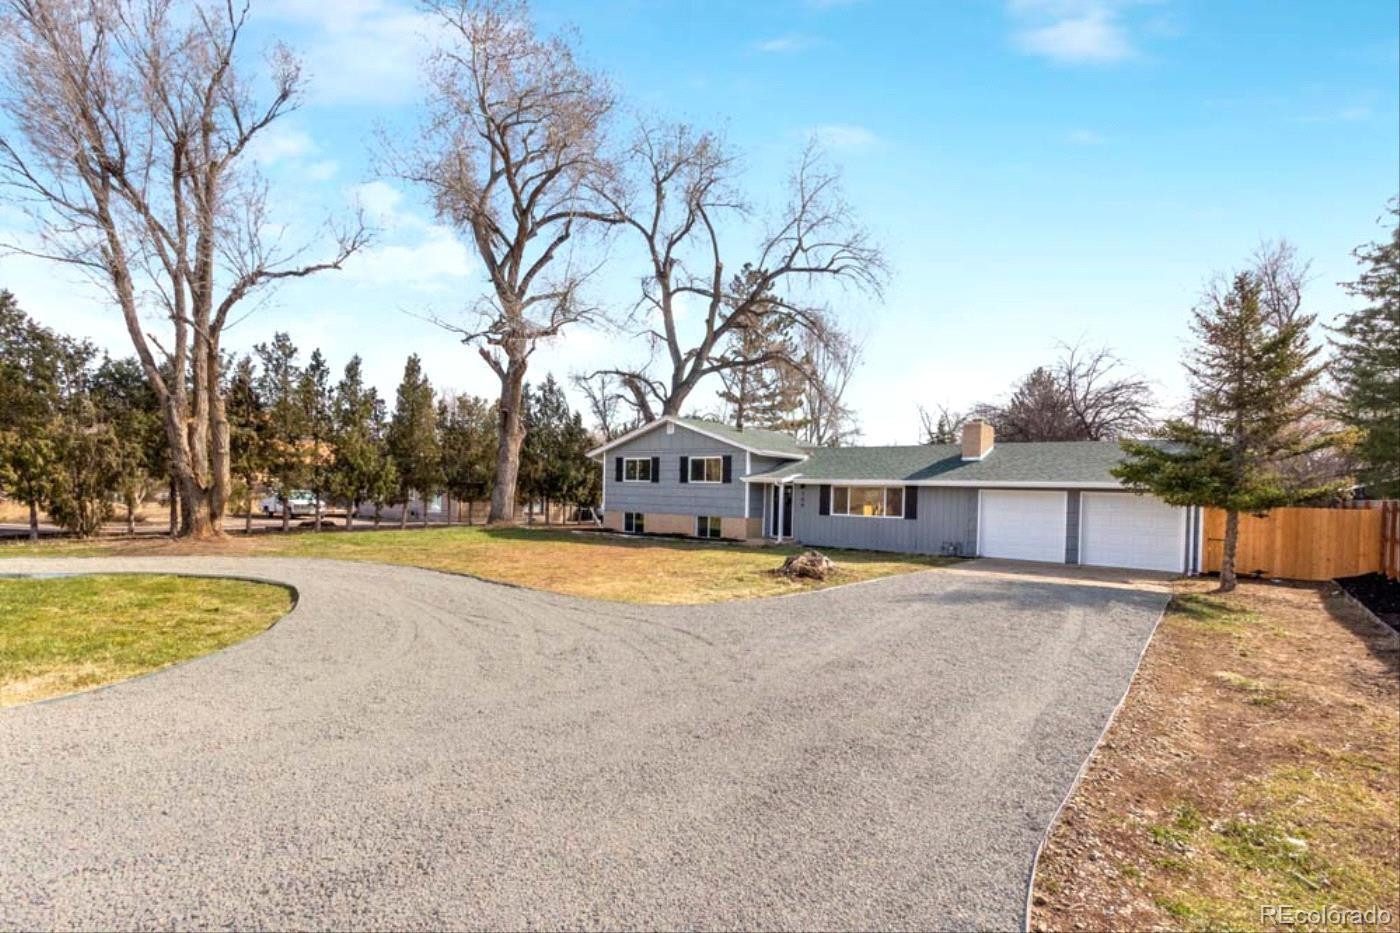 MLS# 4258016 - 2 - 106 N Overland Trail, Fort Collins, CO 80521